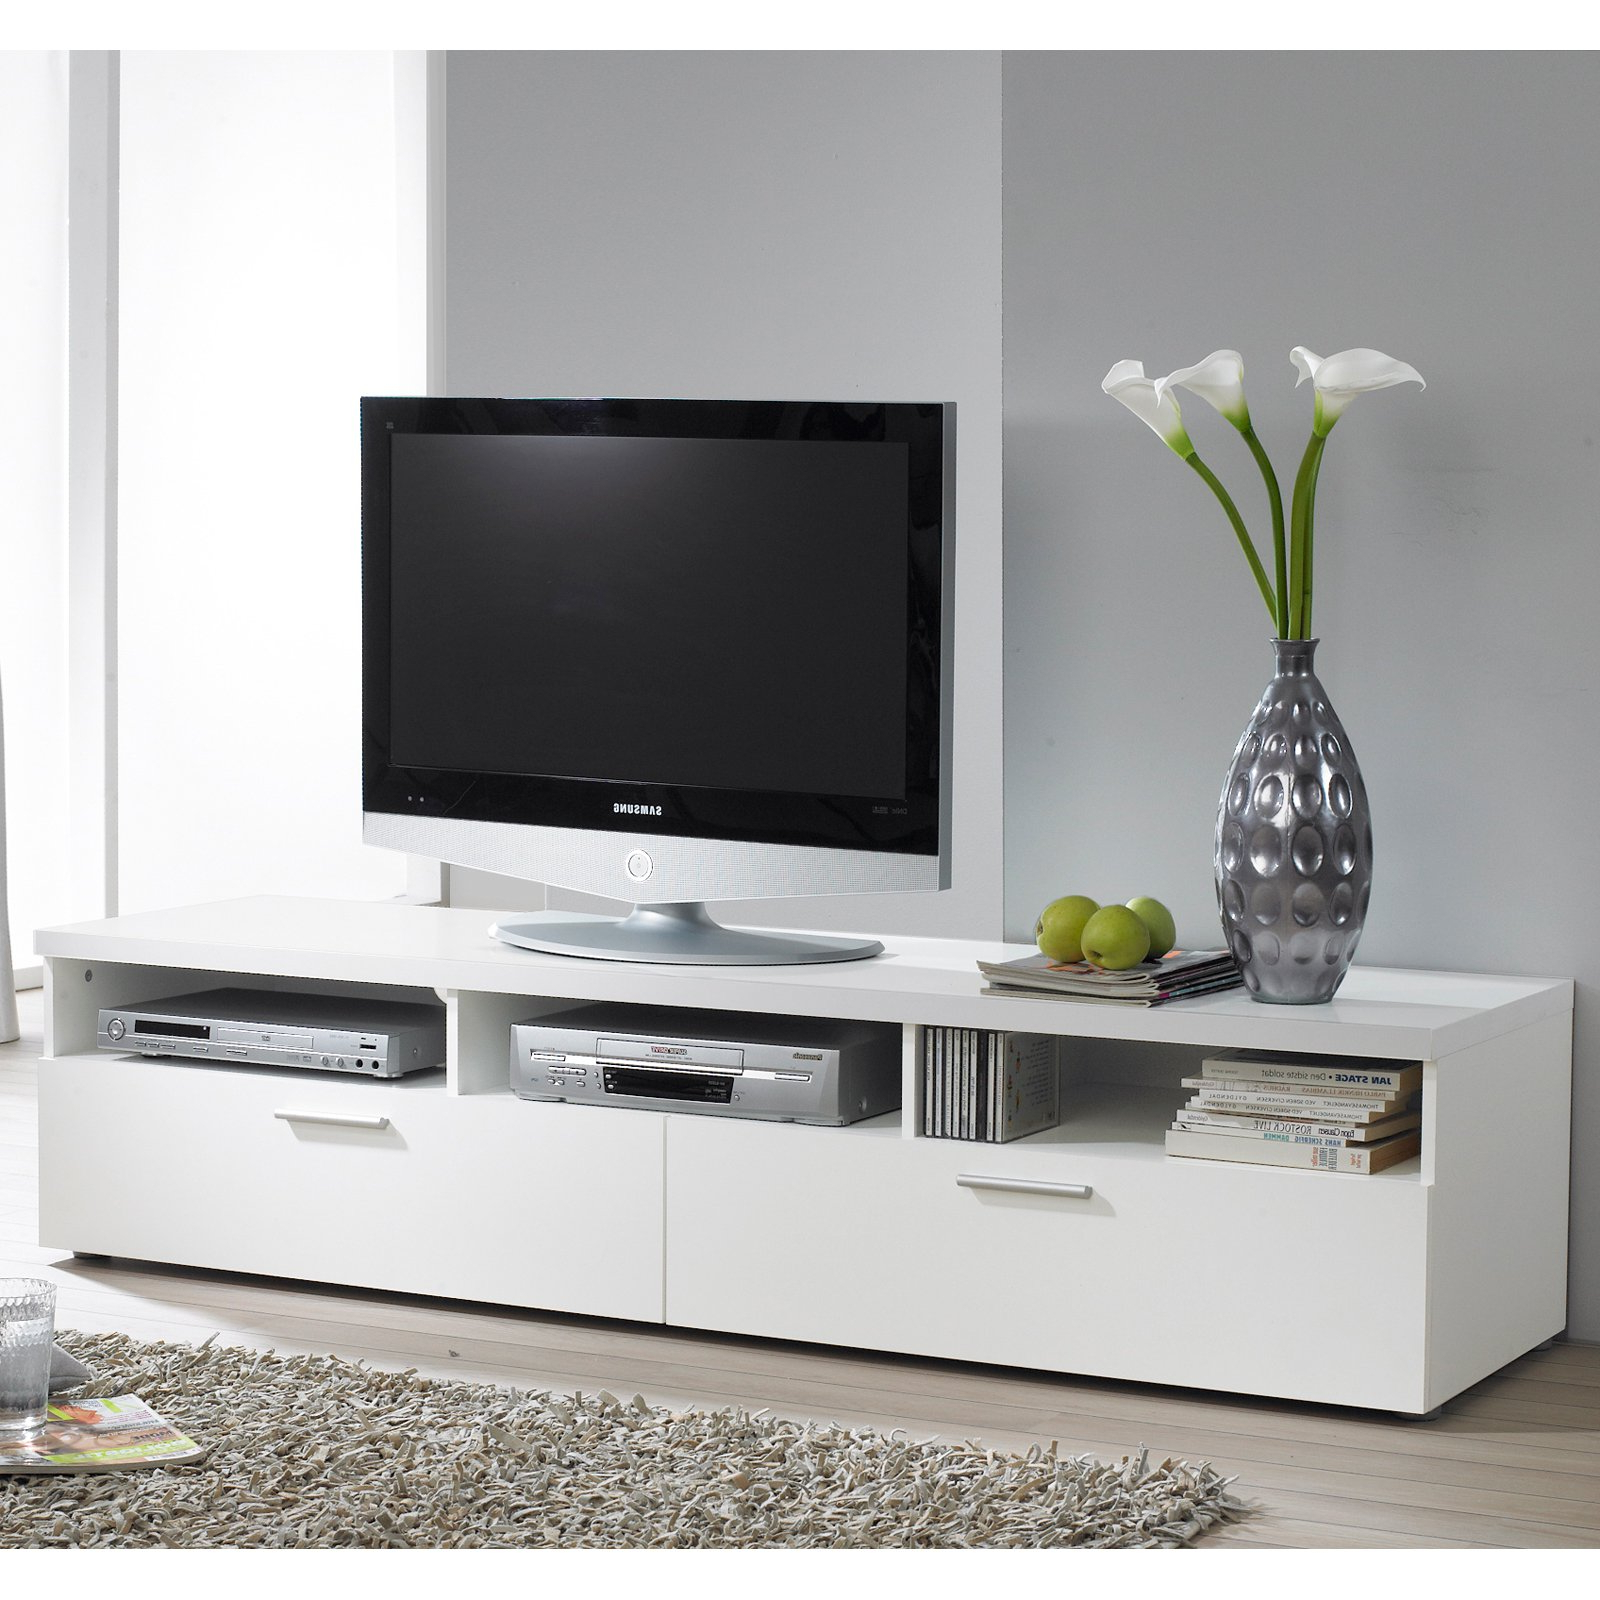 Wide White Tv Stand Extra 36 Inch 100 Cm – Buyouapp With Regard To Latest 100Cm Tv Stands (View 20 of 20)